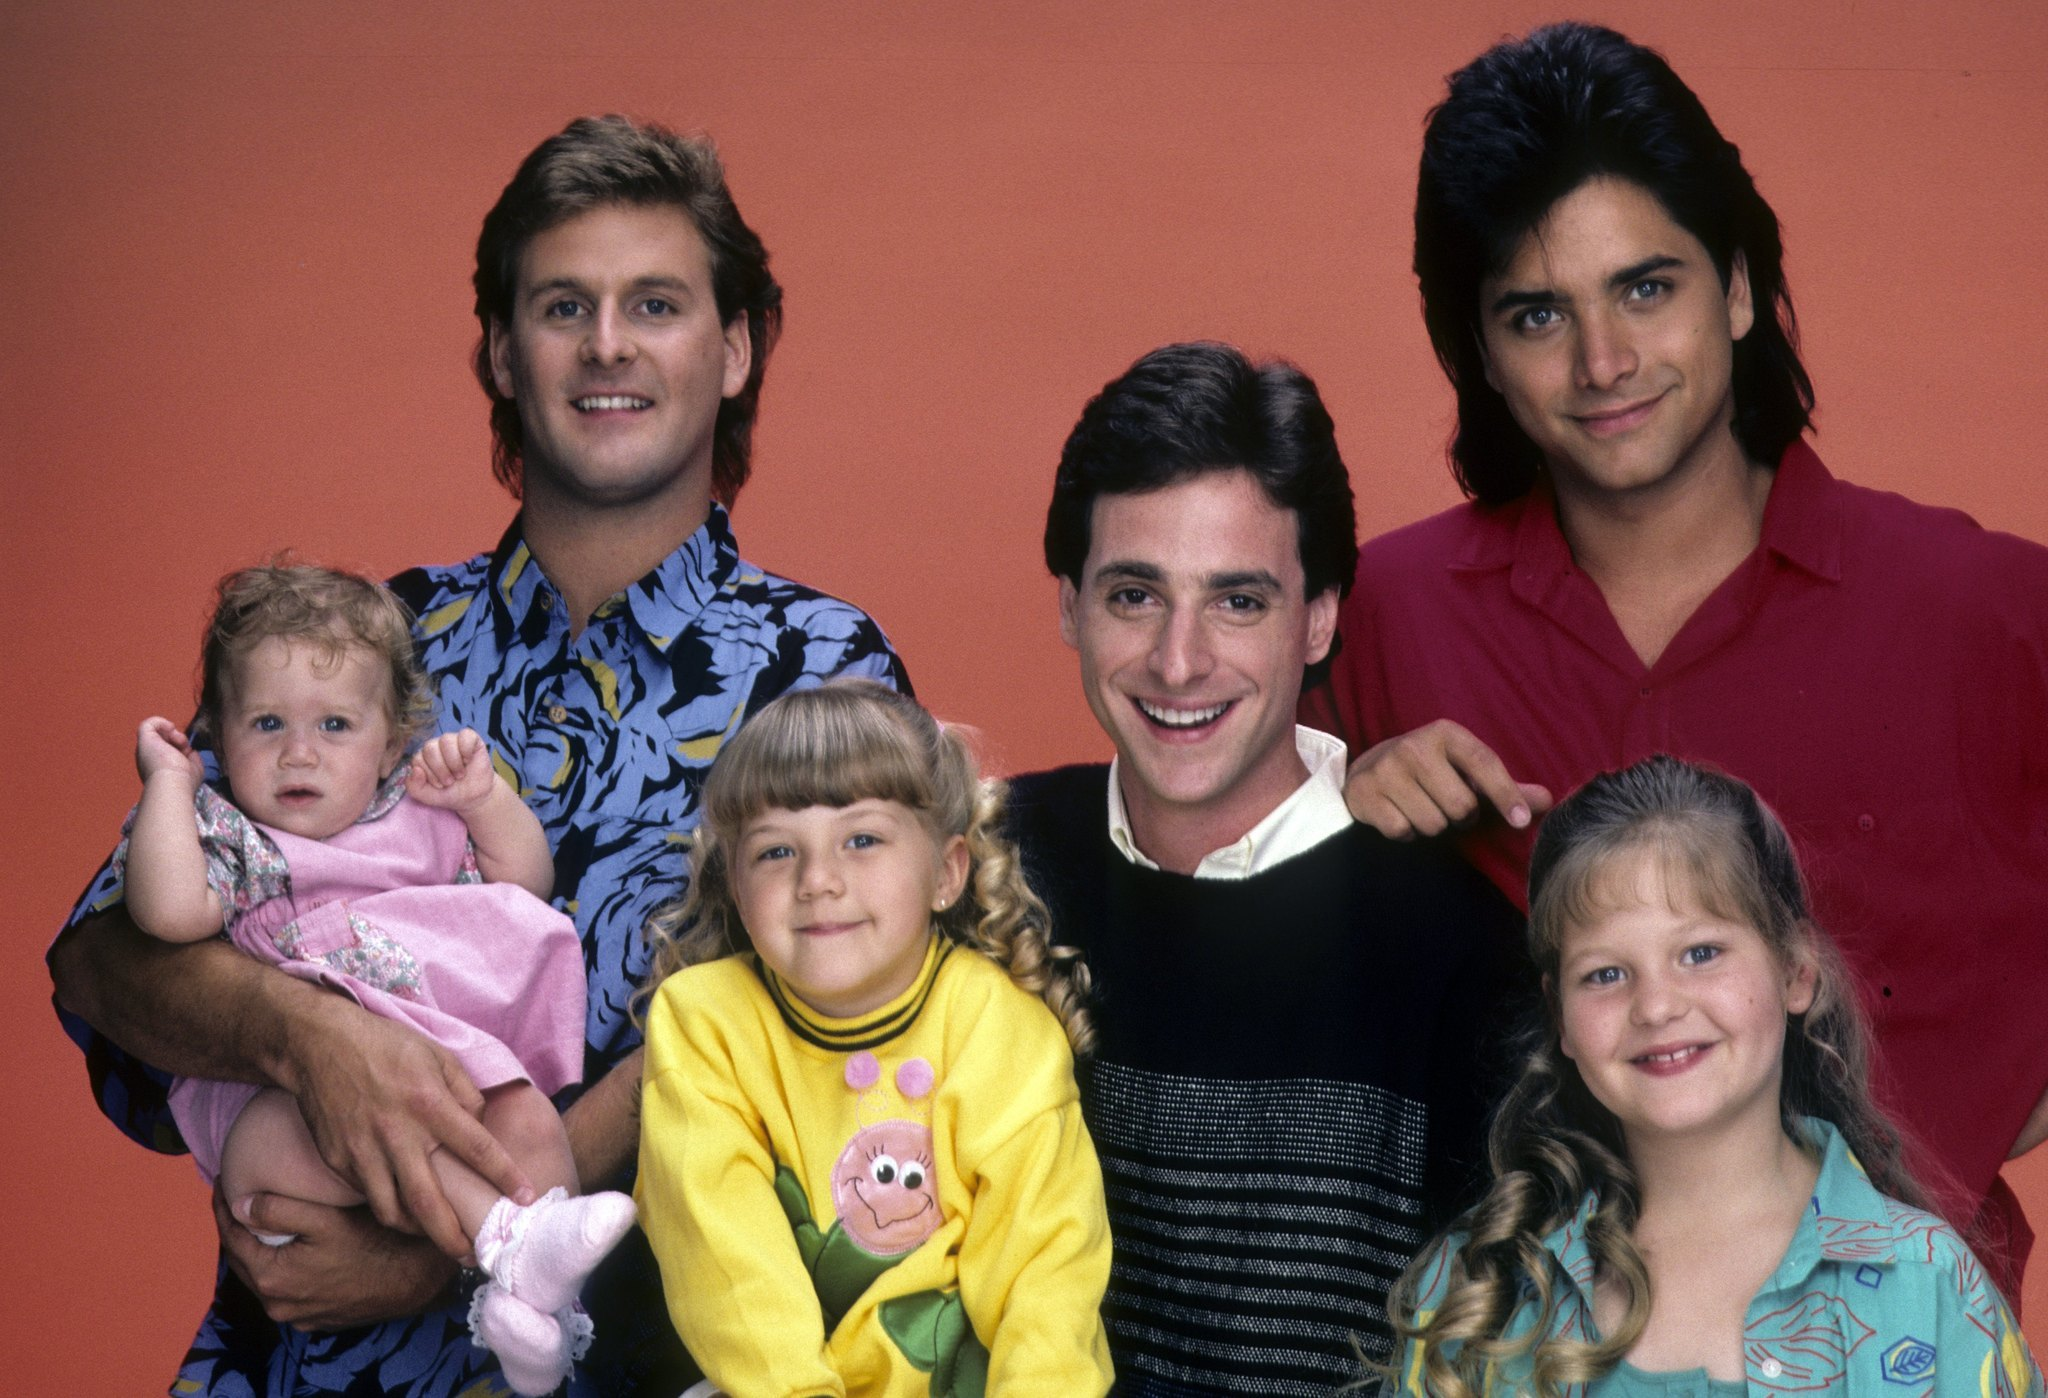 From Full House to Fuller House What has the cast been up to